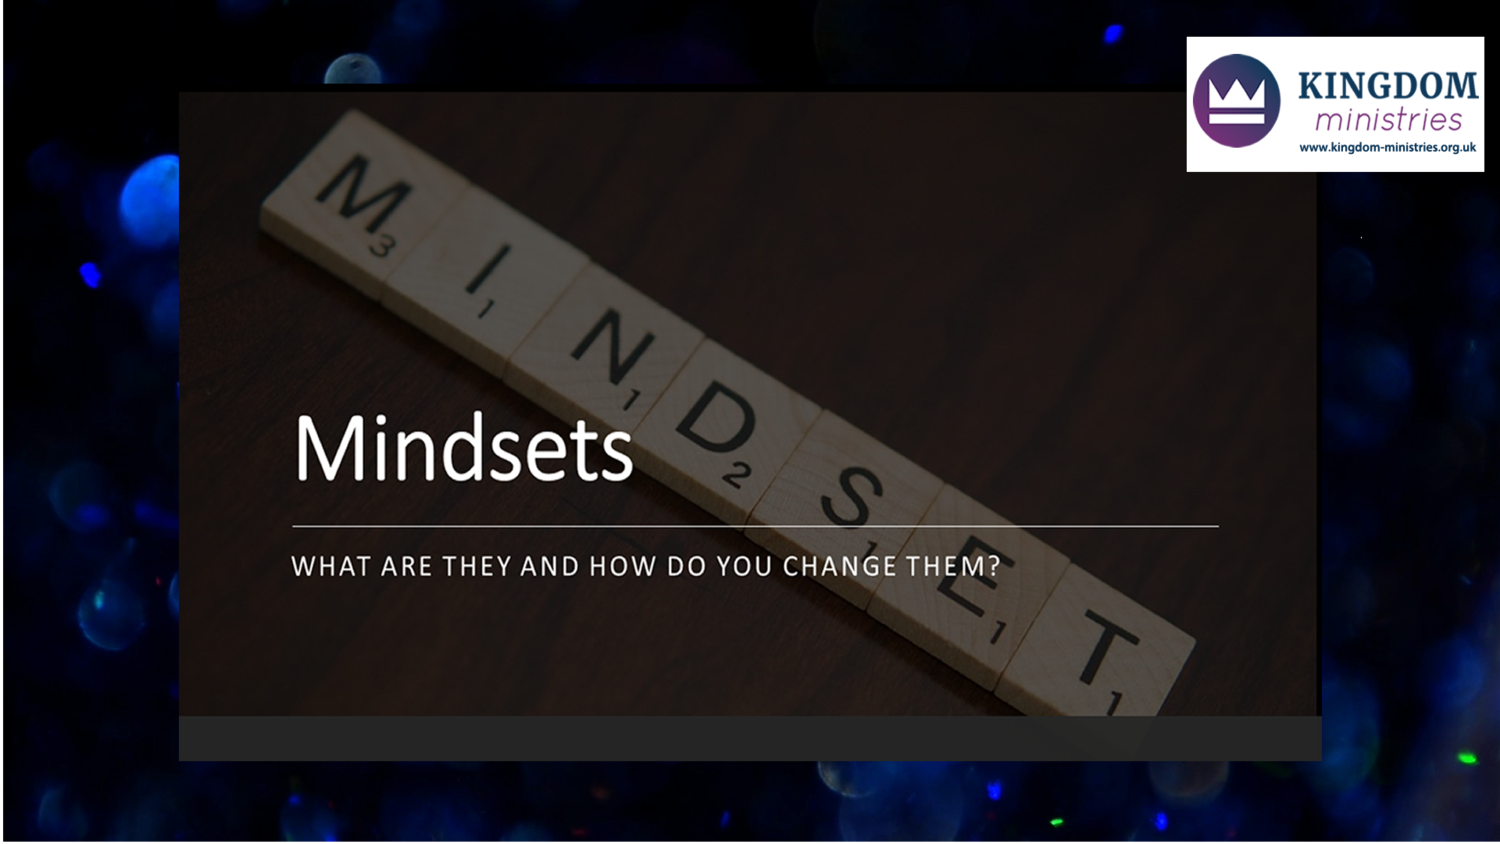 Mindsets E Course - Bring your mind, thoughts and feelings fully into the Kingdom of God.